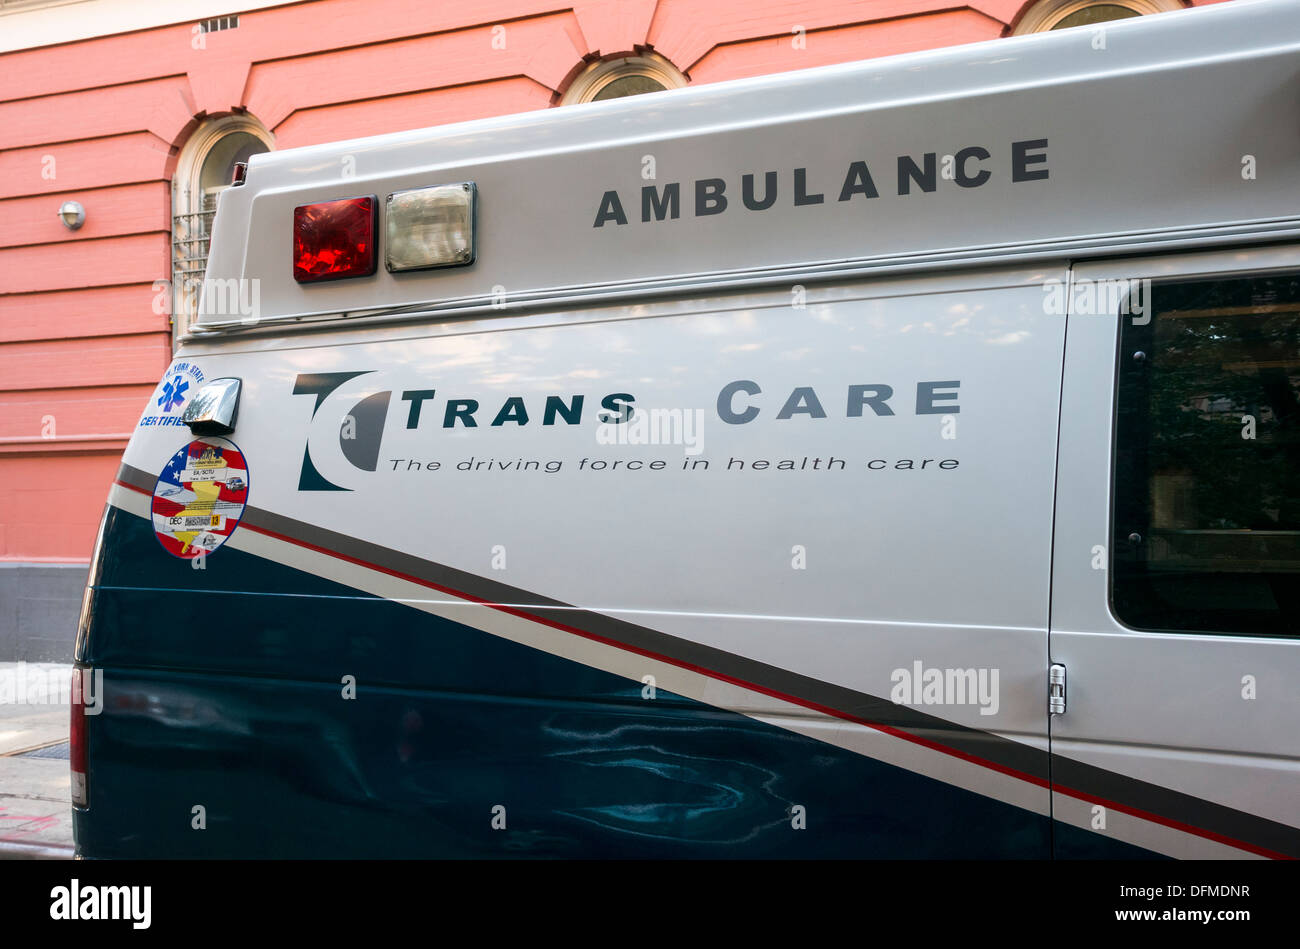 Ambulance on Lower East Side in New York City - Stock Image